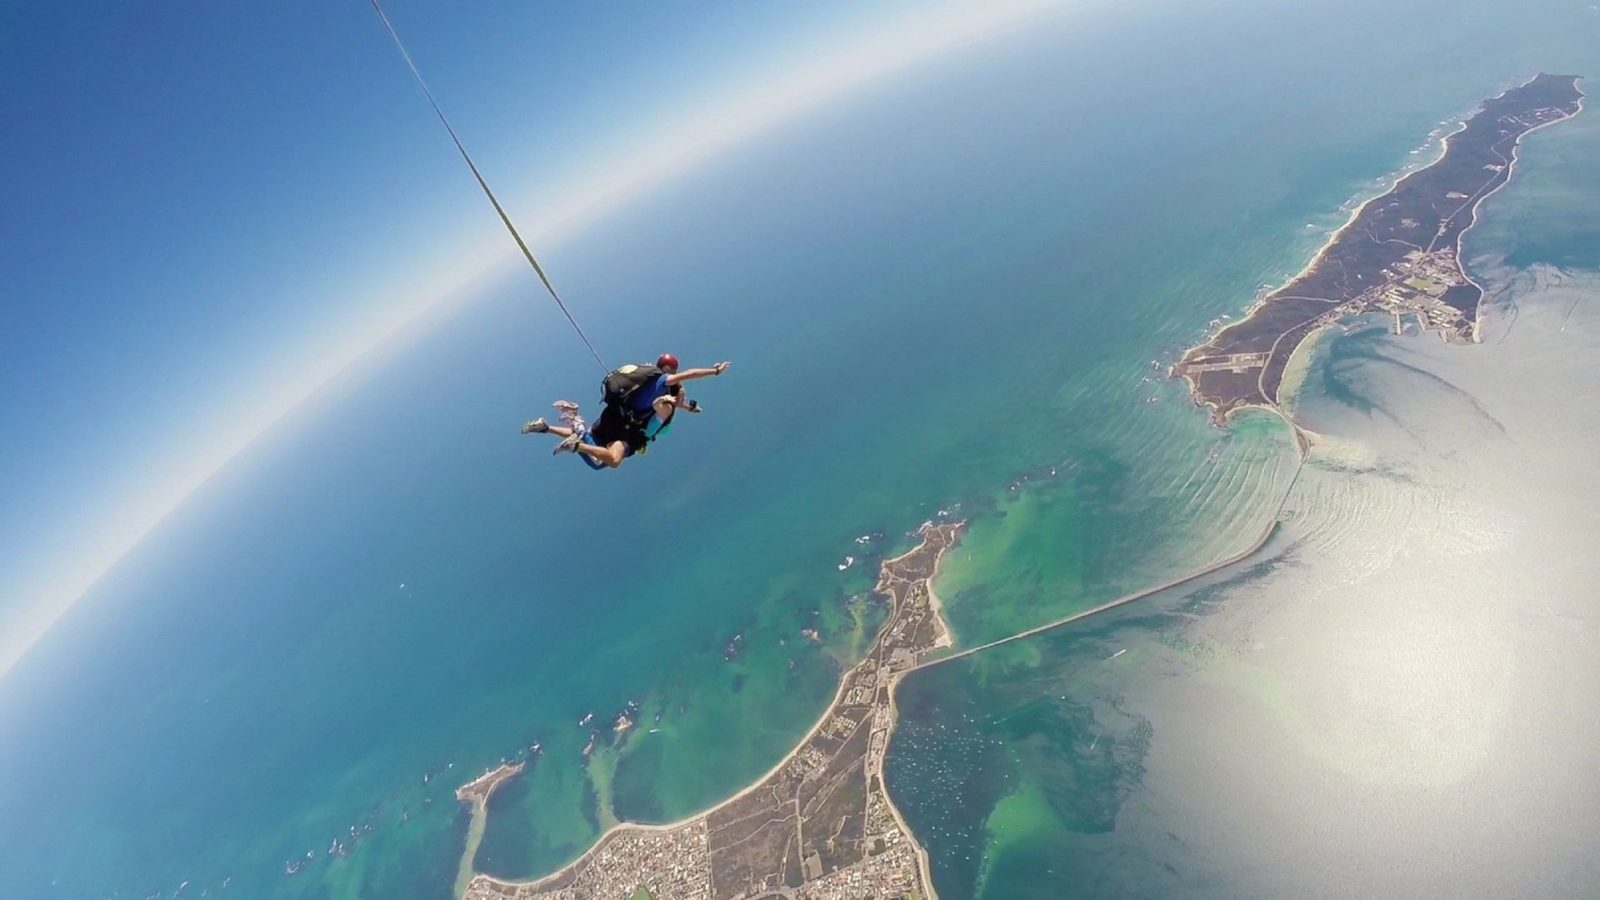 Skydive the Beach and Beyond, Leederville, Western Australia